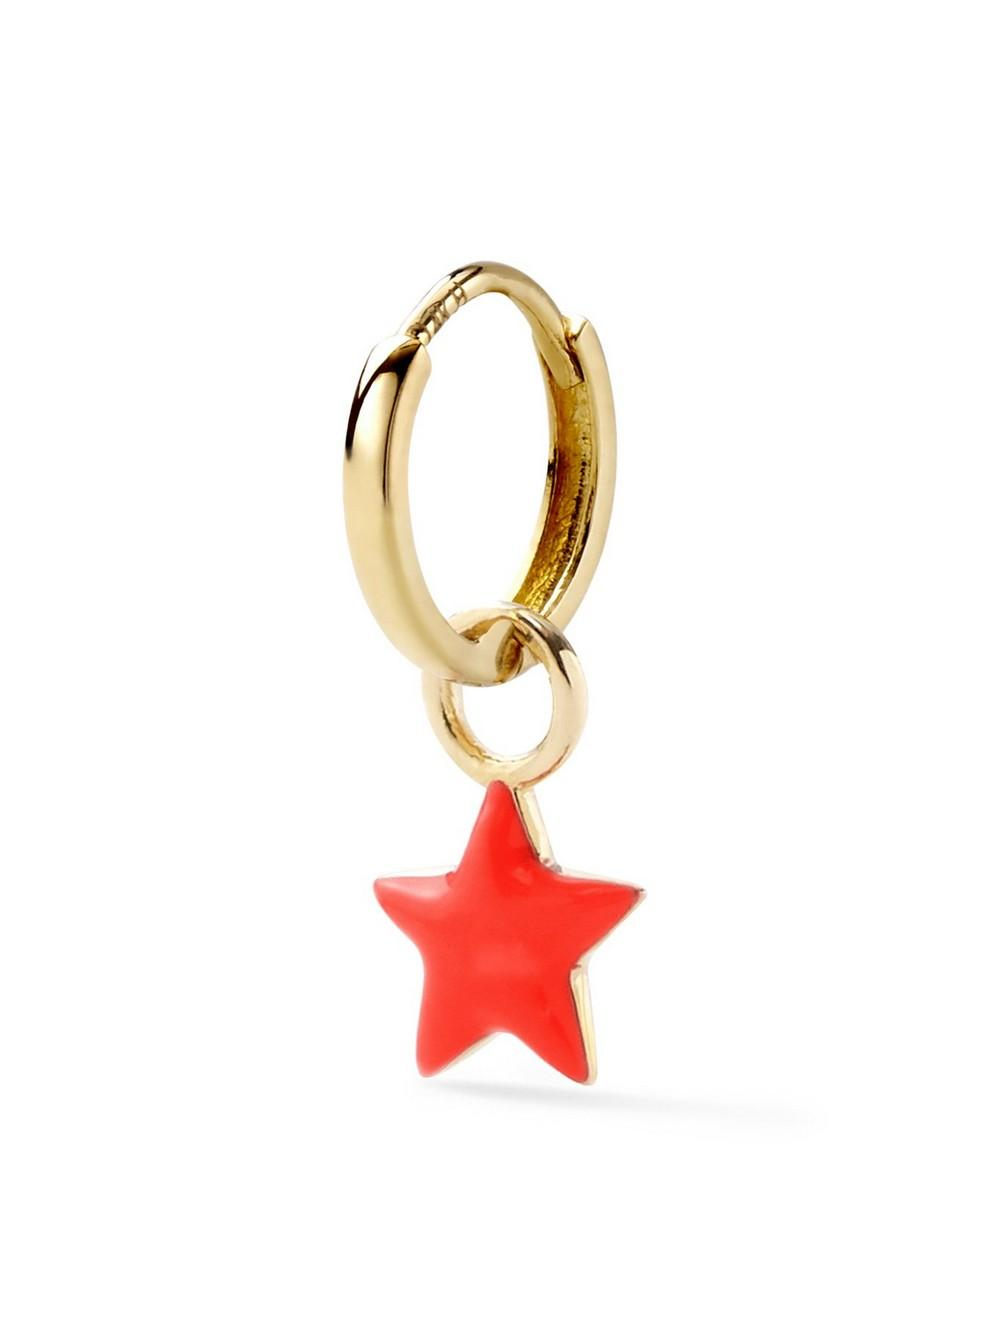 Tiny Star Huggy Charm Item # ALCH10Y